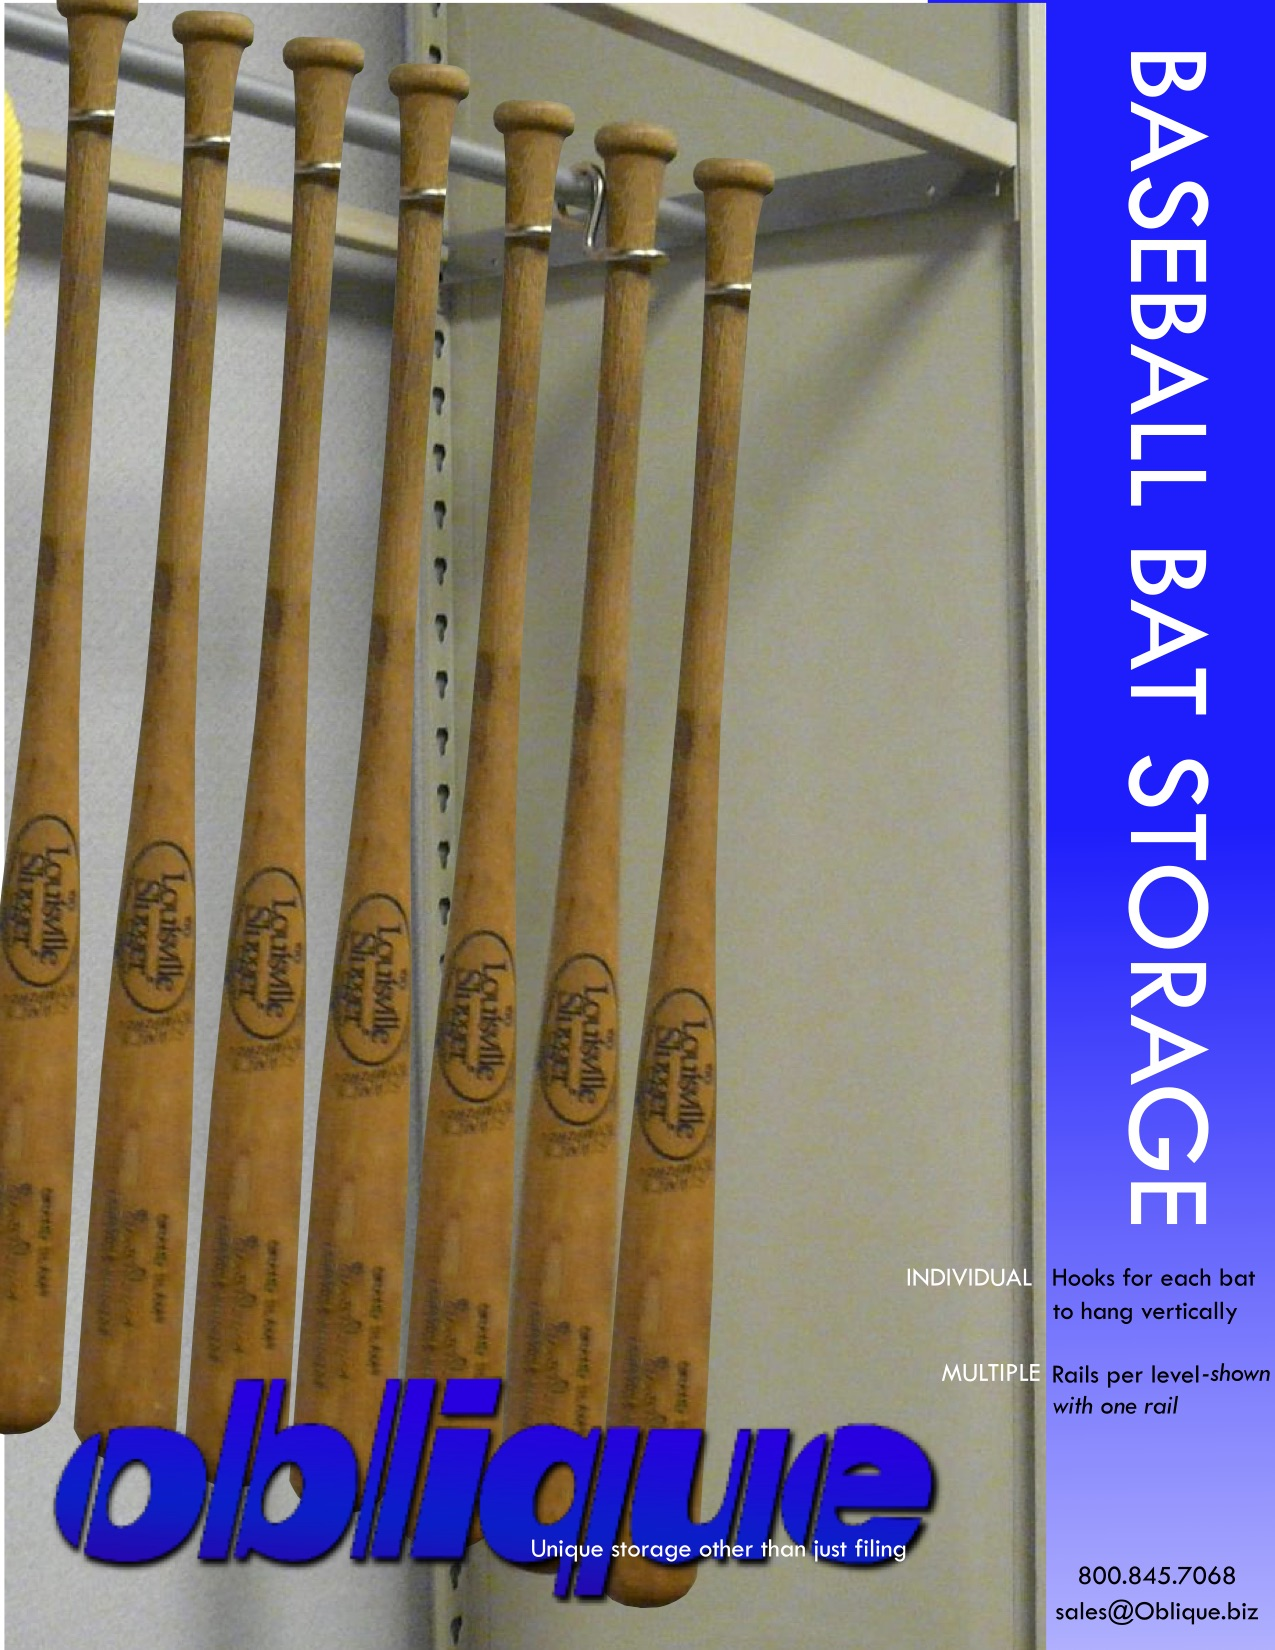 BASEBALL BAT Storage